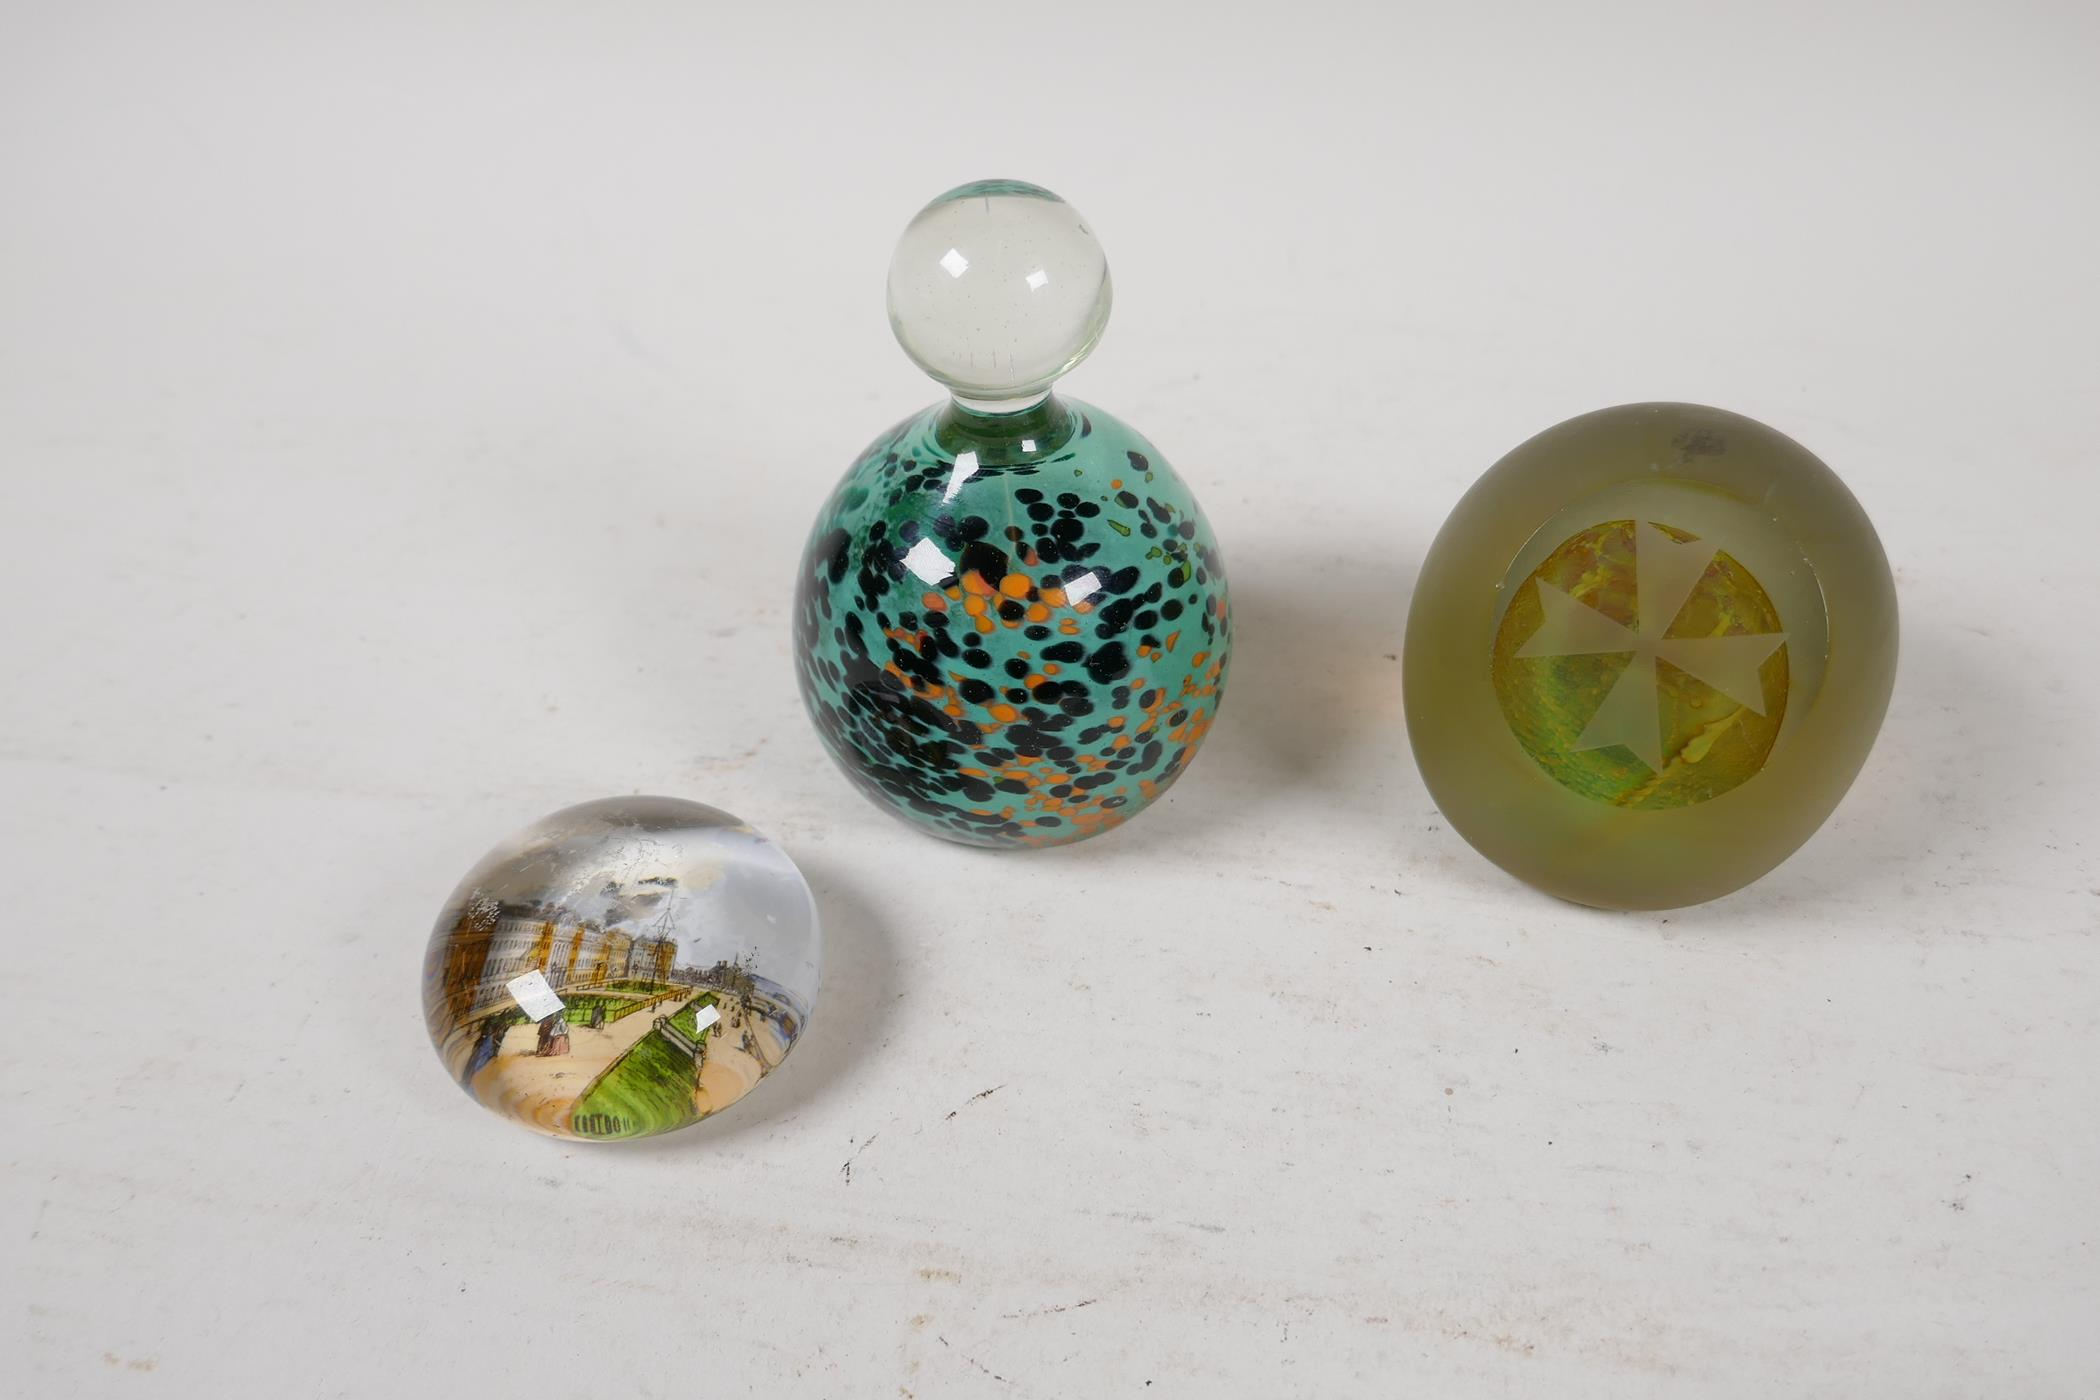 A 1930s Scottish floral glass paperweight by Salvador Ysart, a Caithness yellow carnation glass - Image 7 of 7